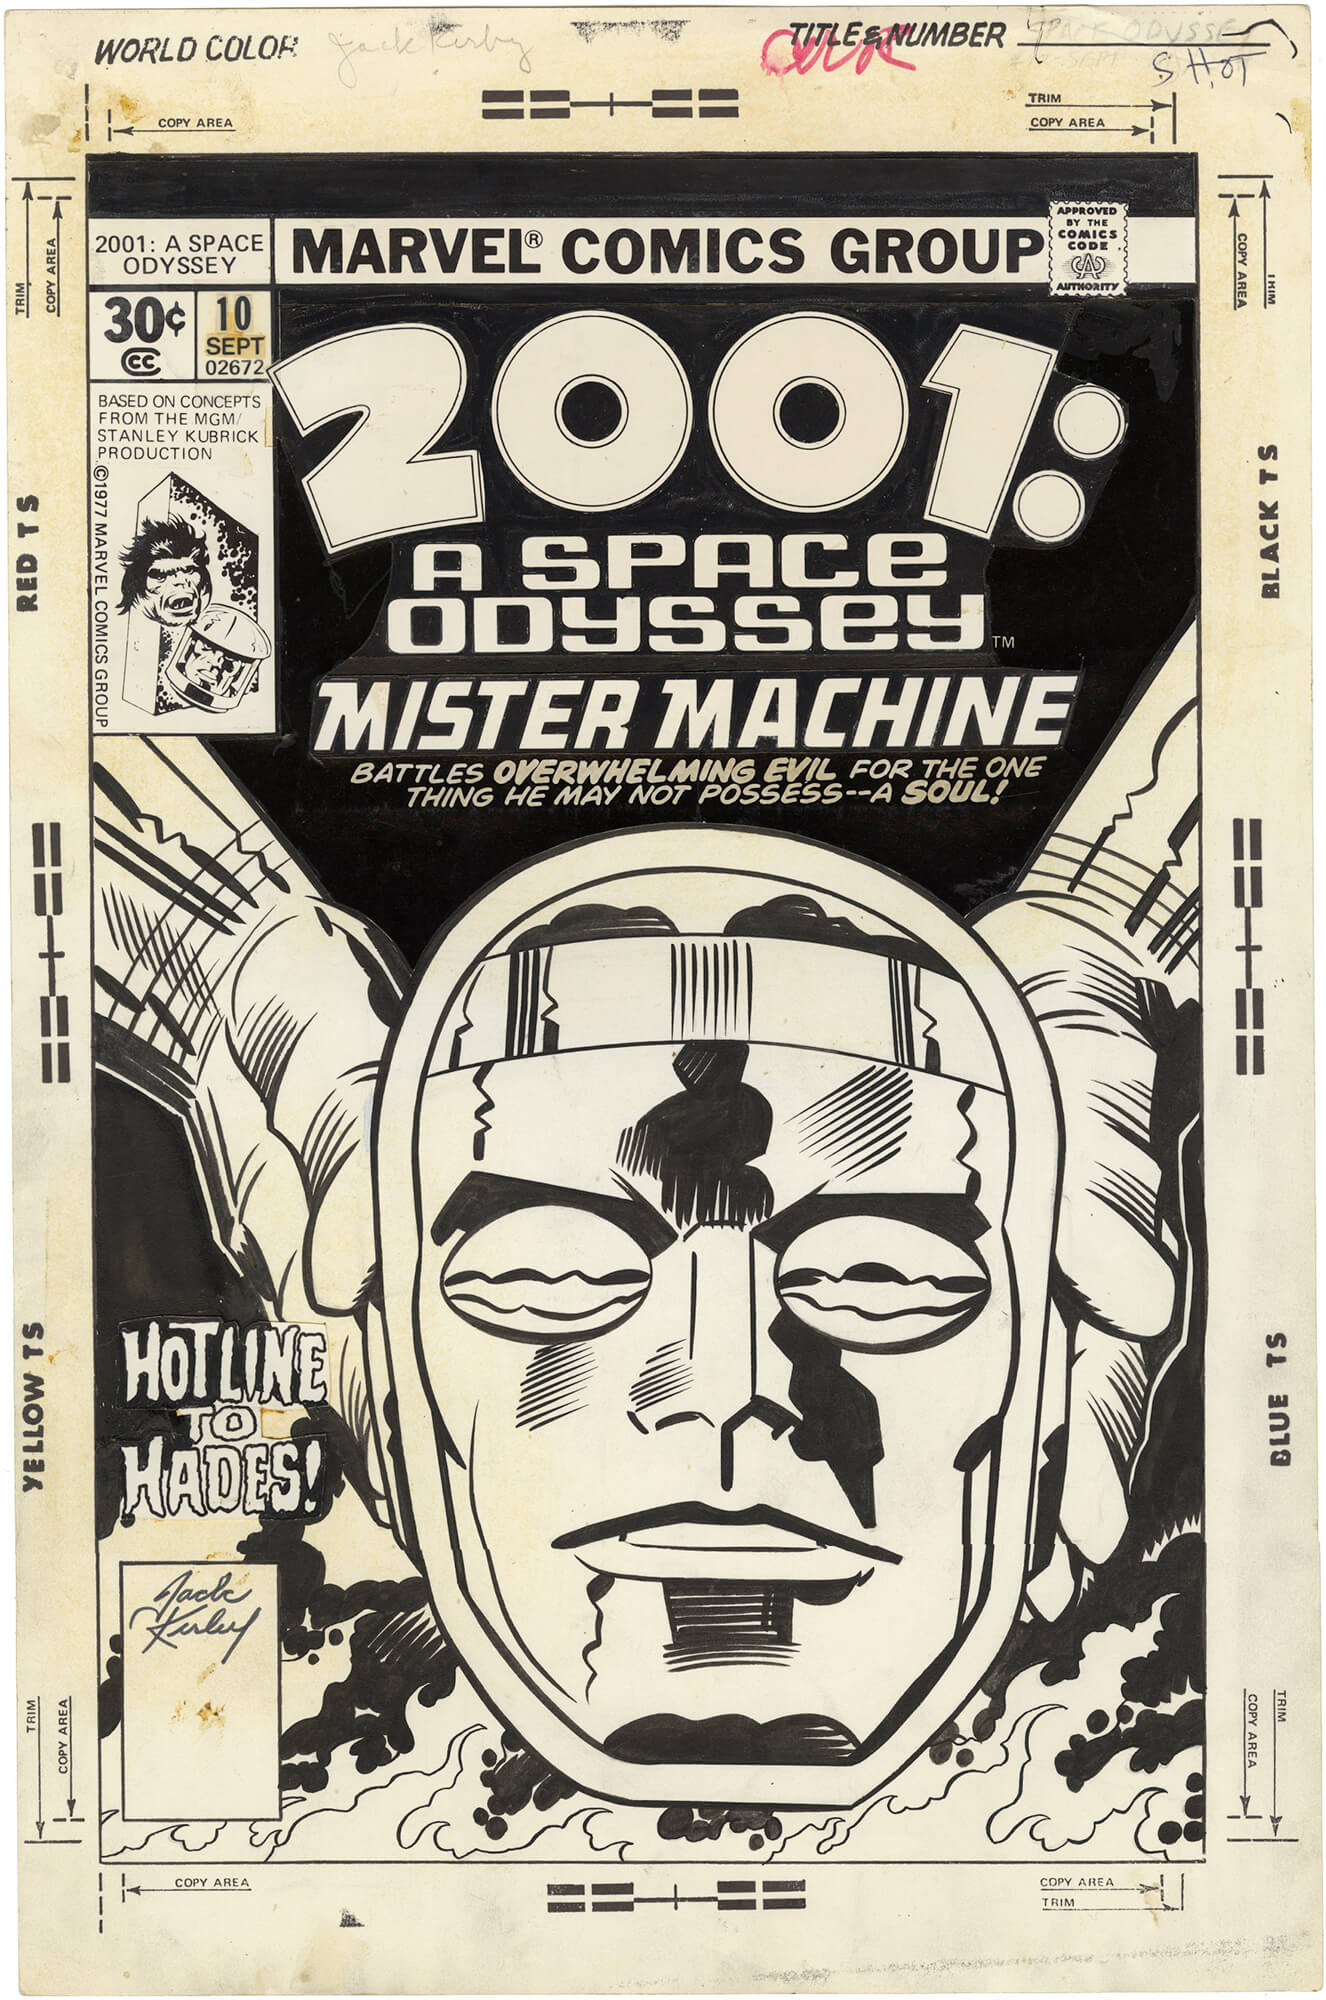 2001: A Space Odyssey #10 Cover (Signed)